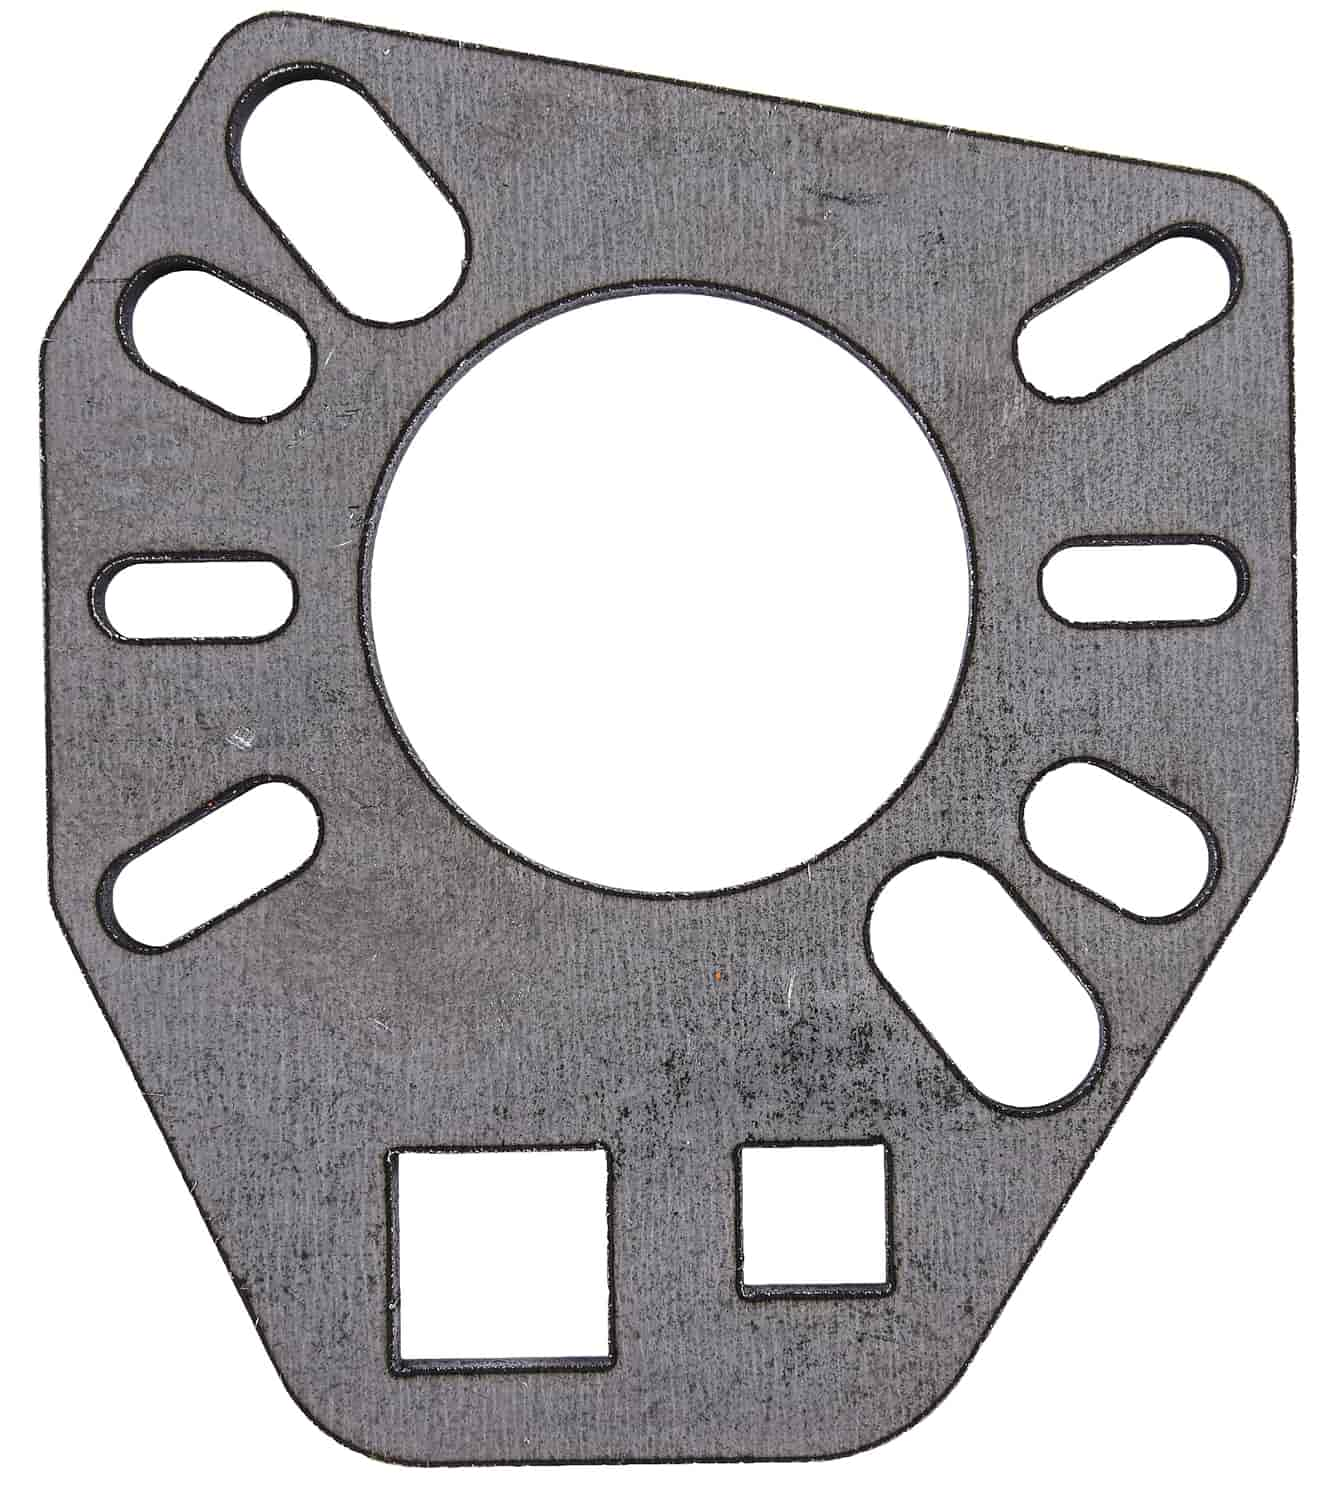 JEGS Pinion Yoke Wrench Accepts Either 1350 or 1310 Series U-Joints